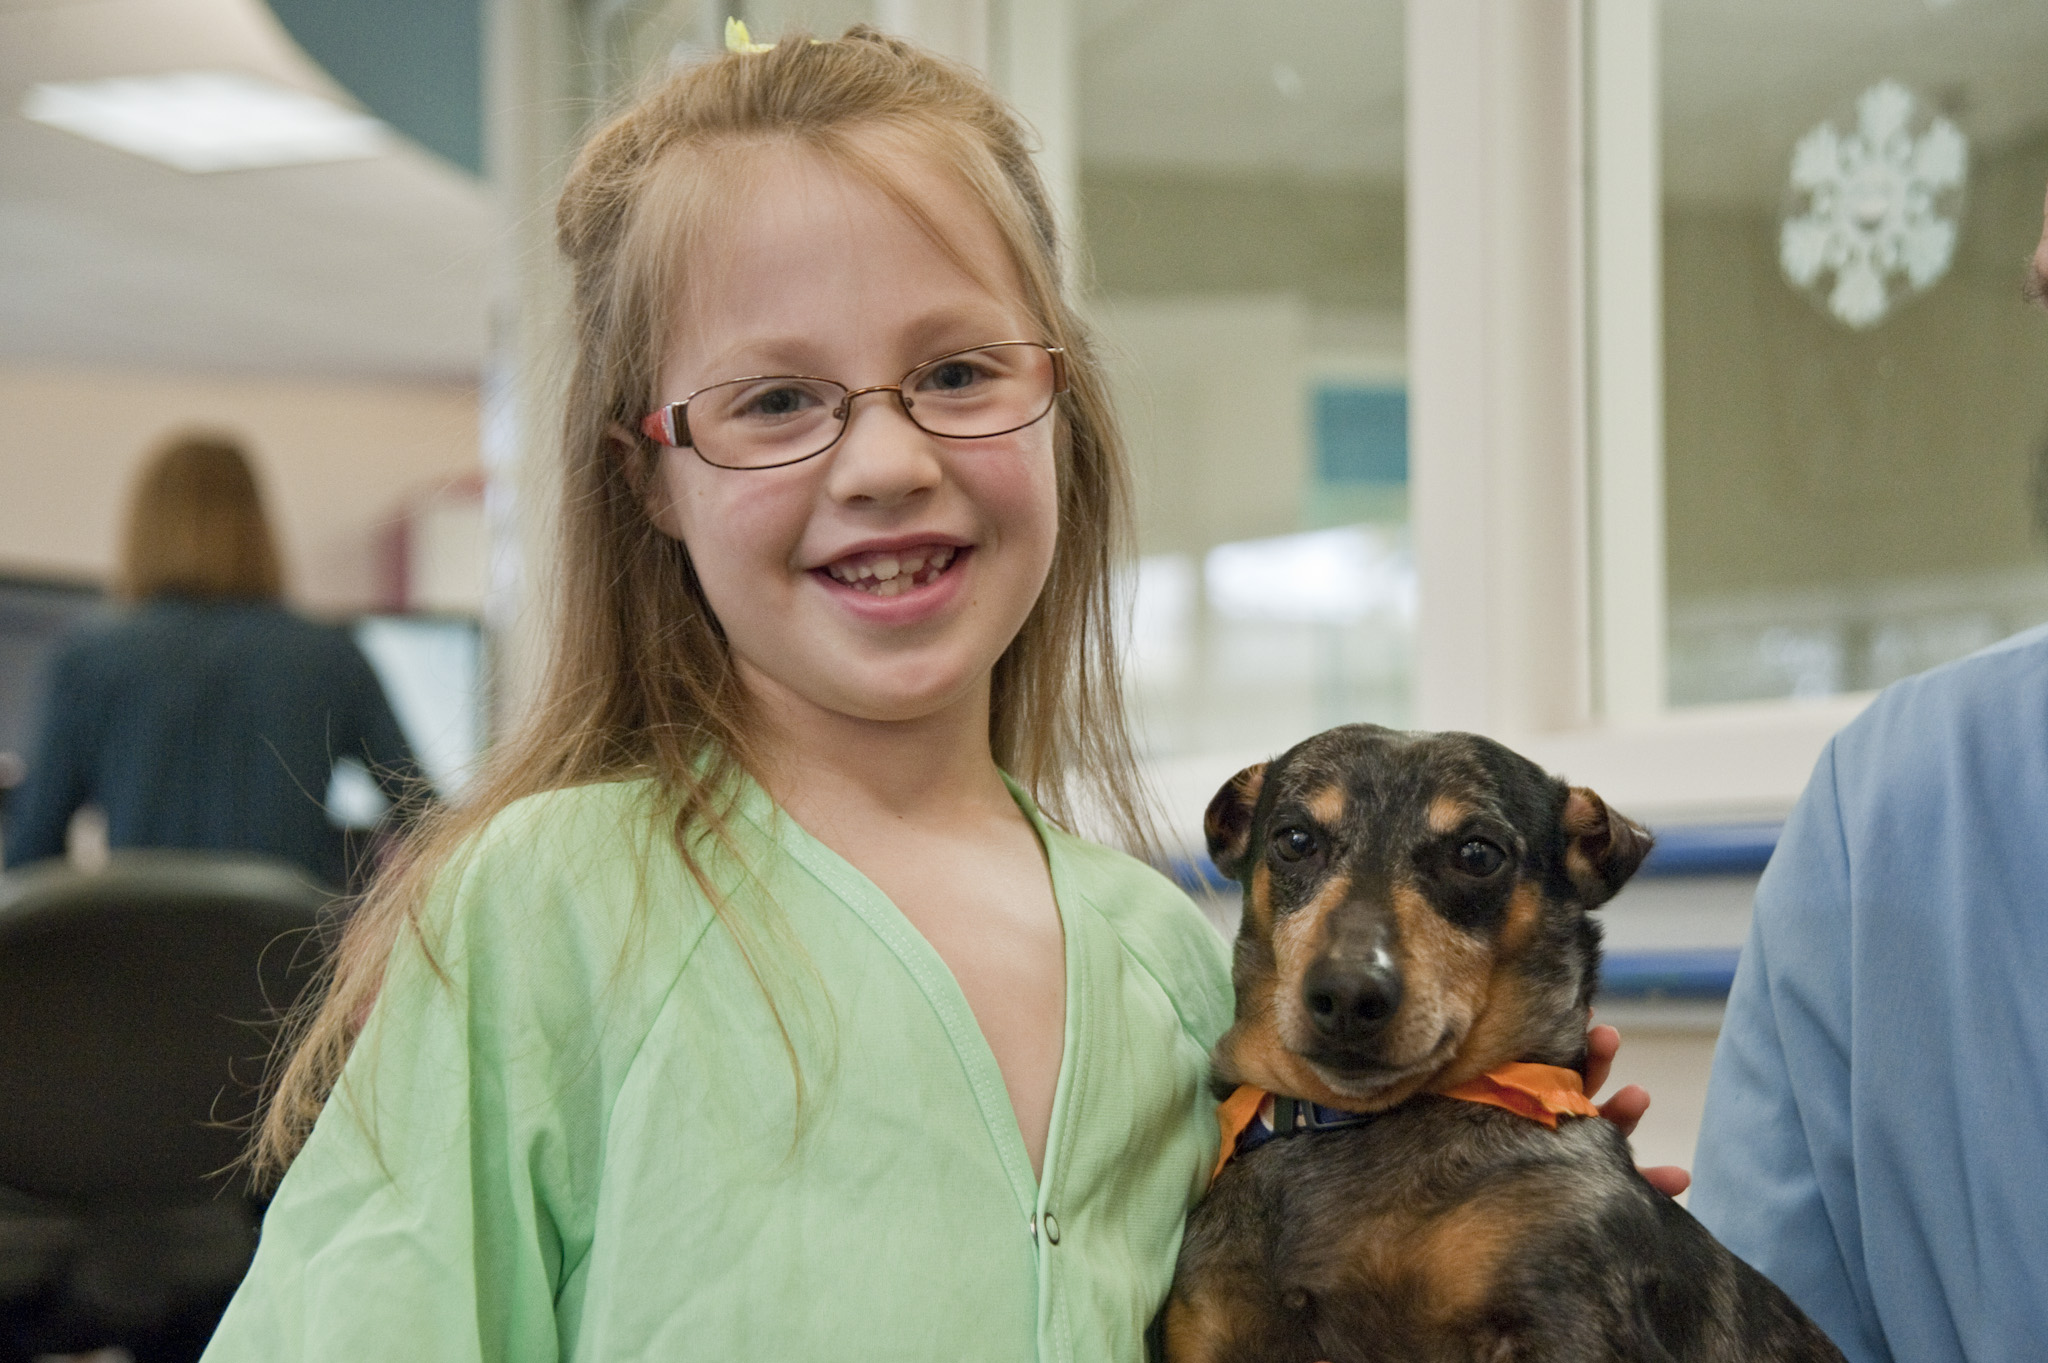 Lee Roy Dachshund Seattle Children's Hospital